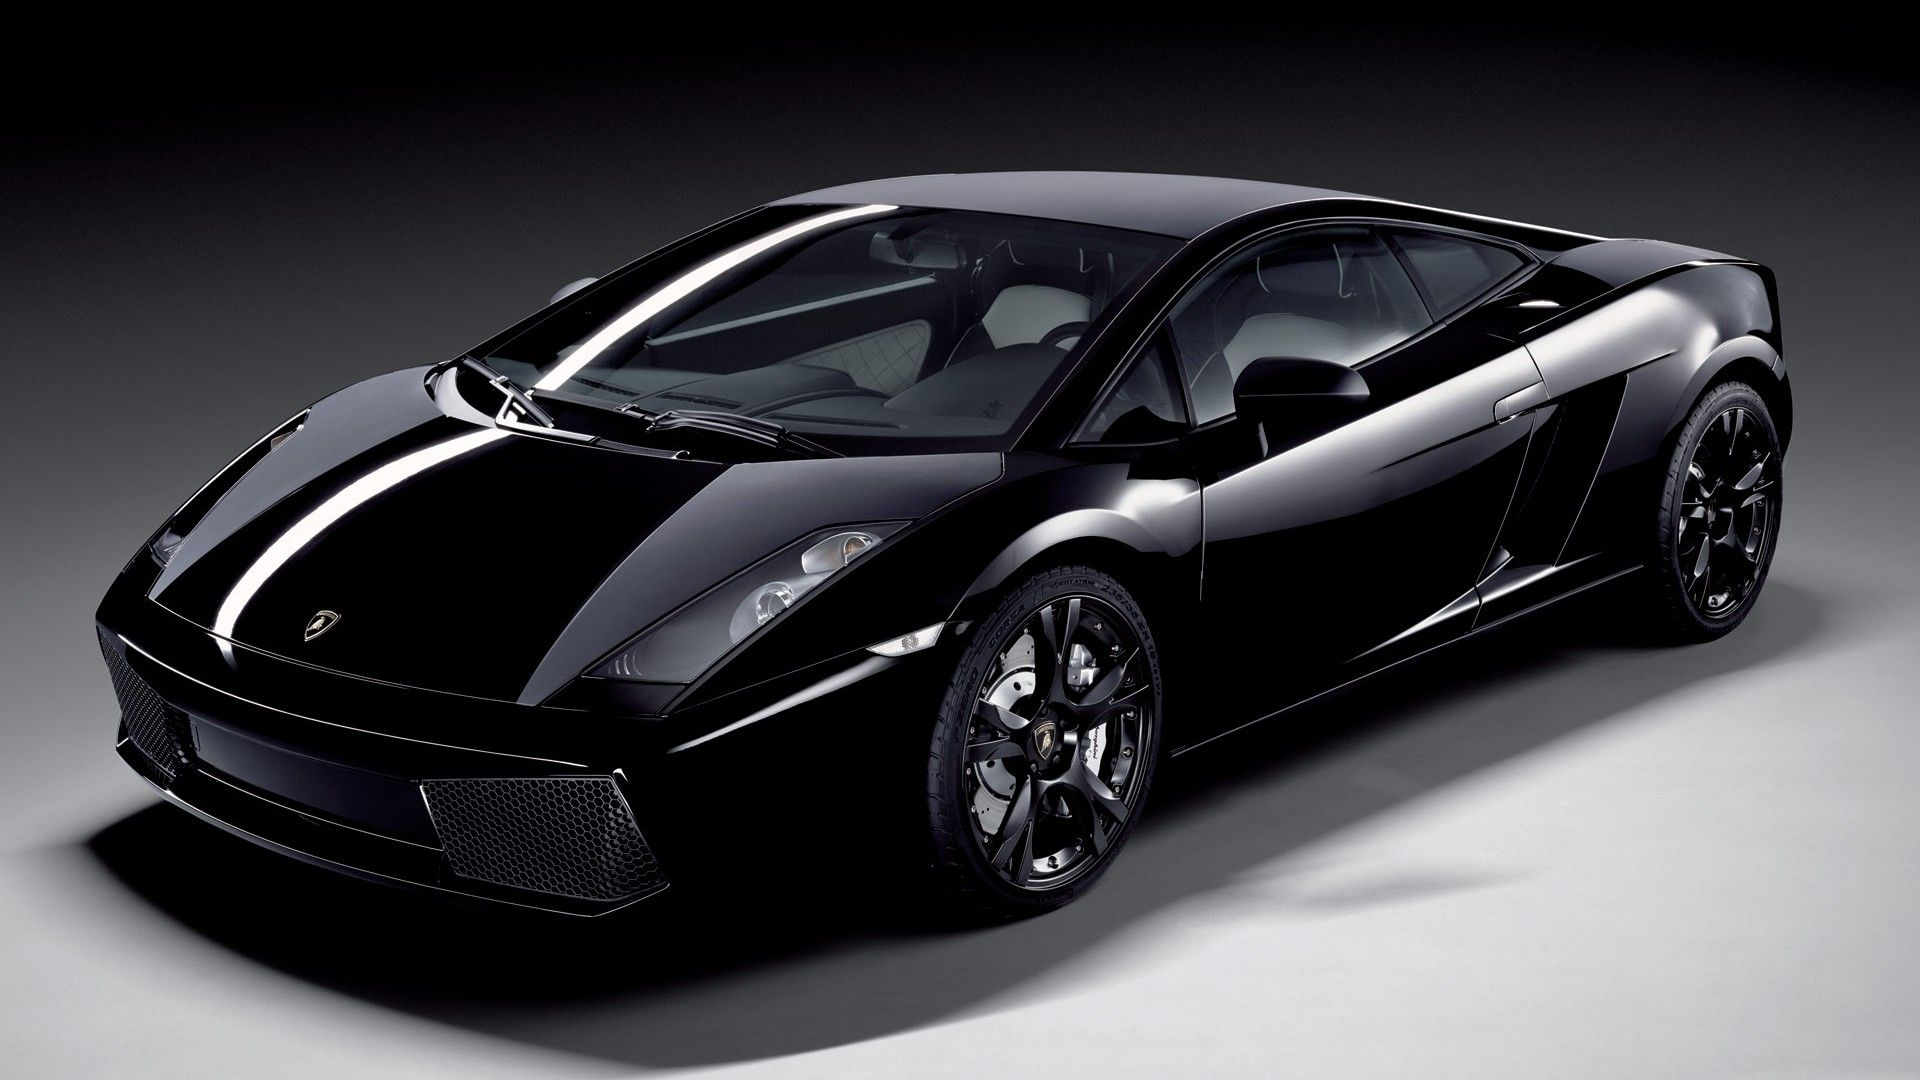 Lamborghini Gallardo Black 1920x1080 HD Image Cars